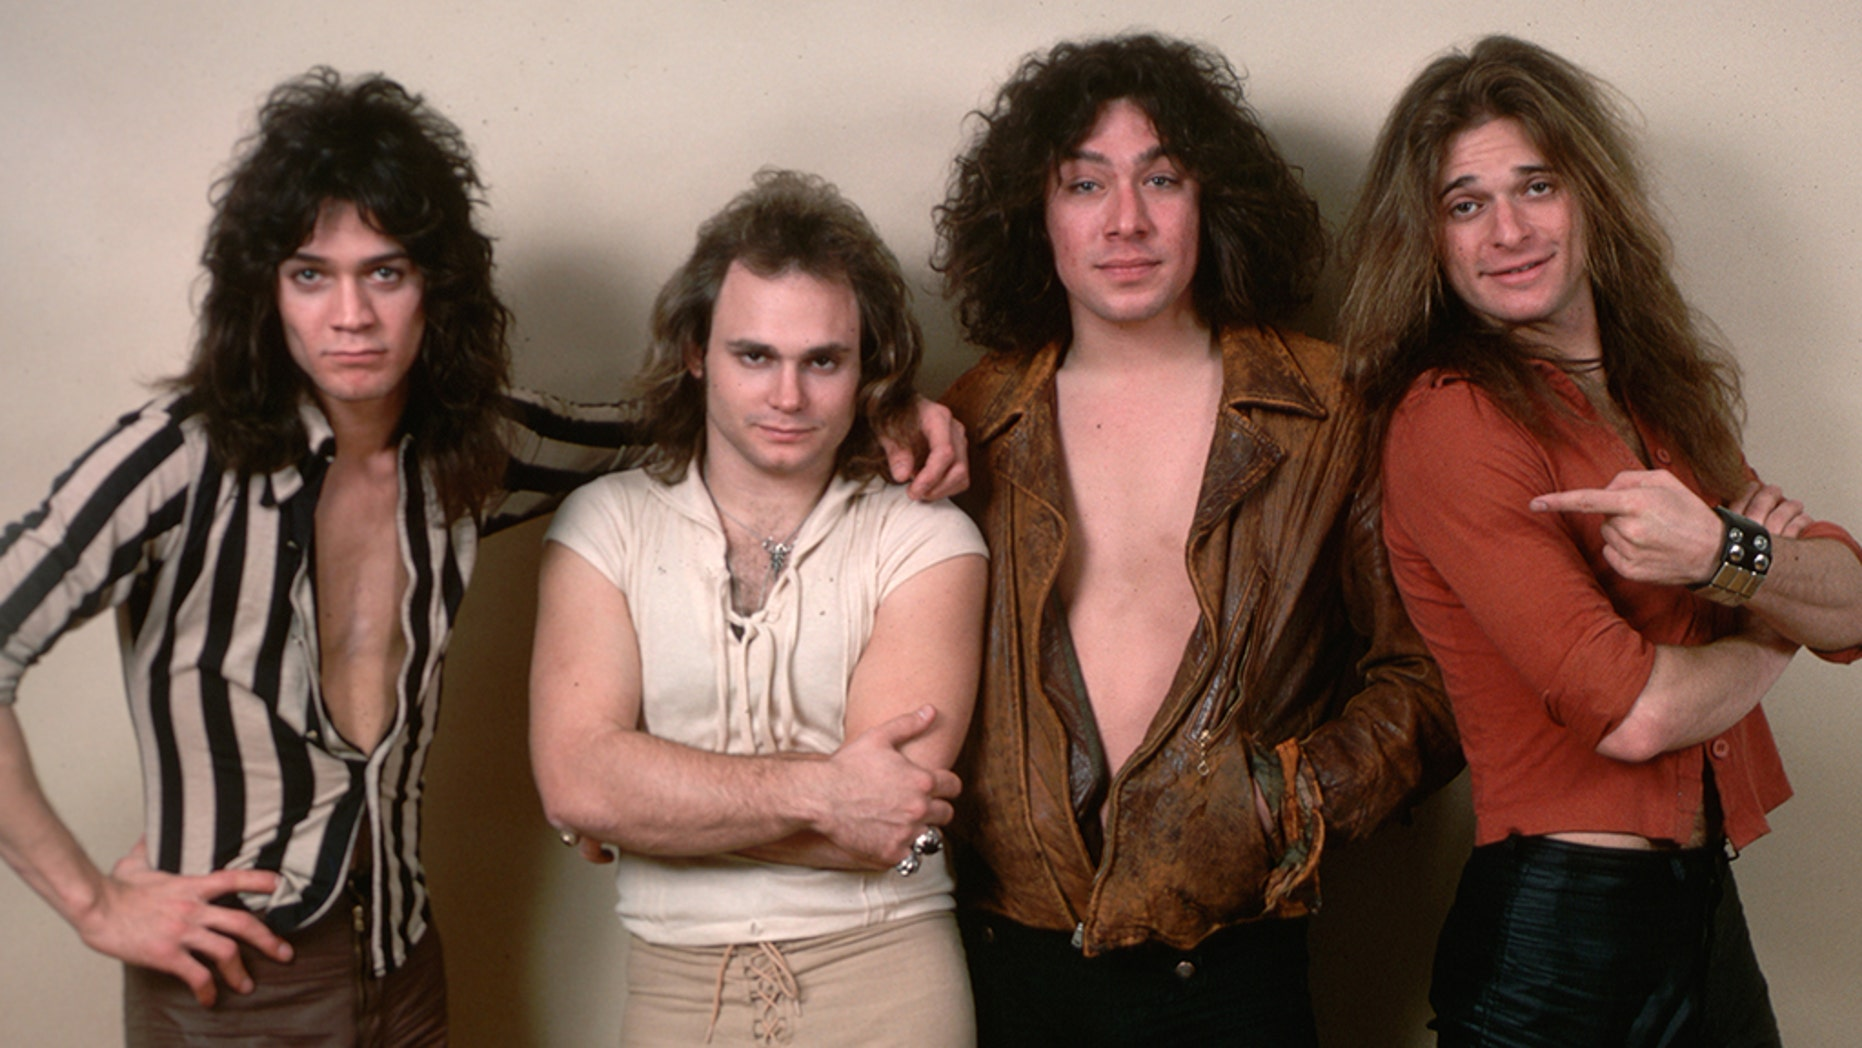 (Original Caption) : 1978- Picture shows the four members of the band Van Halen (left to right) Eddie Van Halen, Michael Anthony, Alex Van Halen and David Lee Roth. They are standing next to one-another in front of a white wall. (Photo by Lynn Goldsmith/Corbis/VCG via Getty Images)